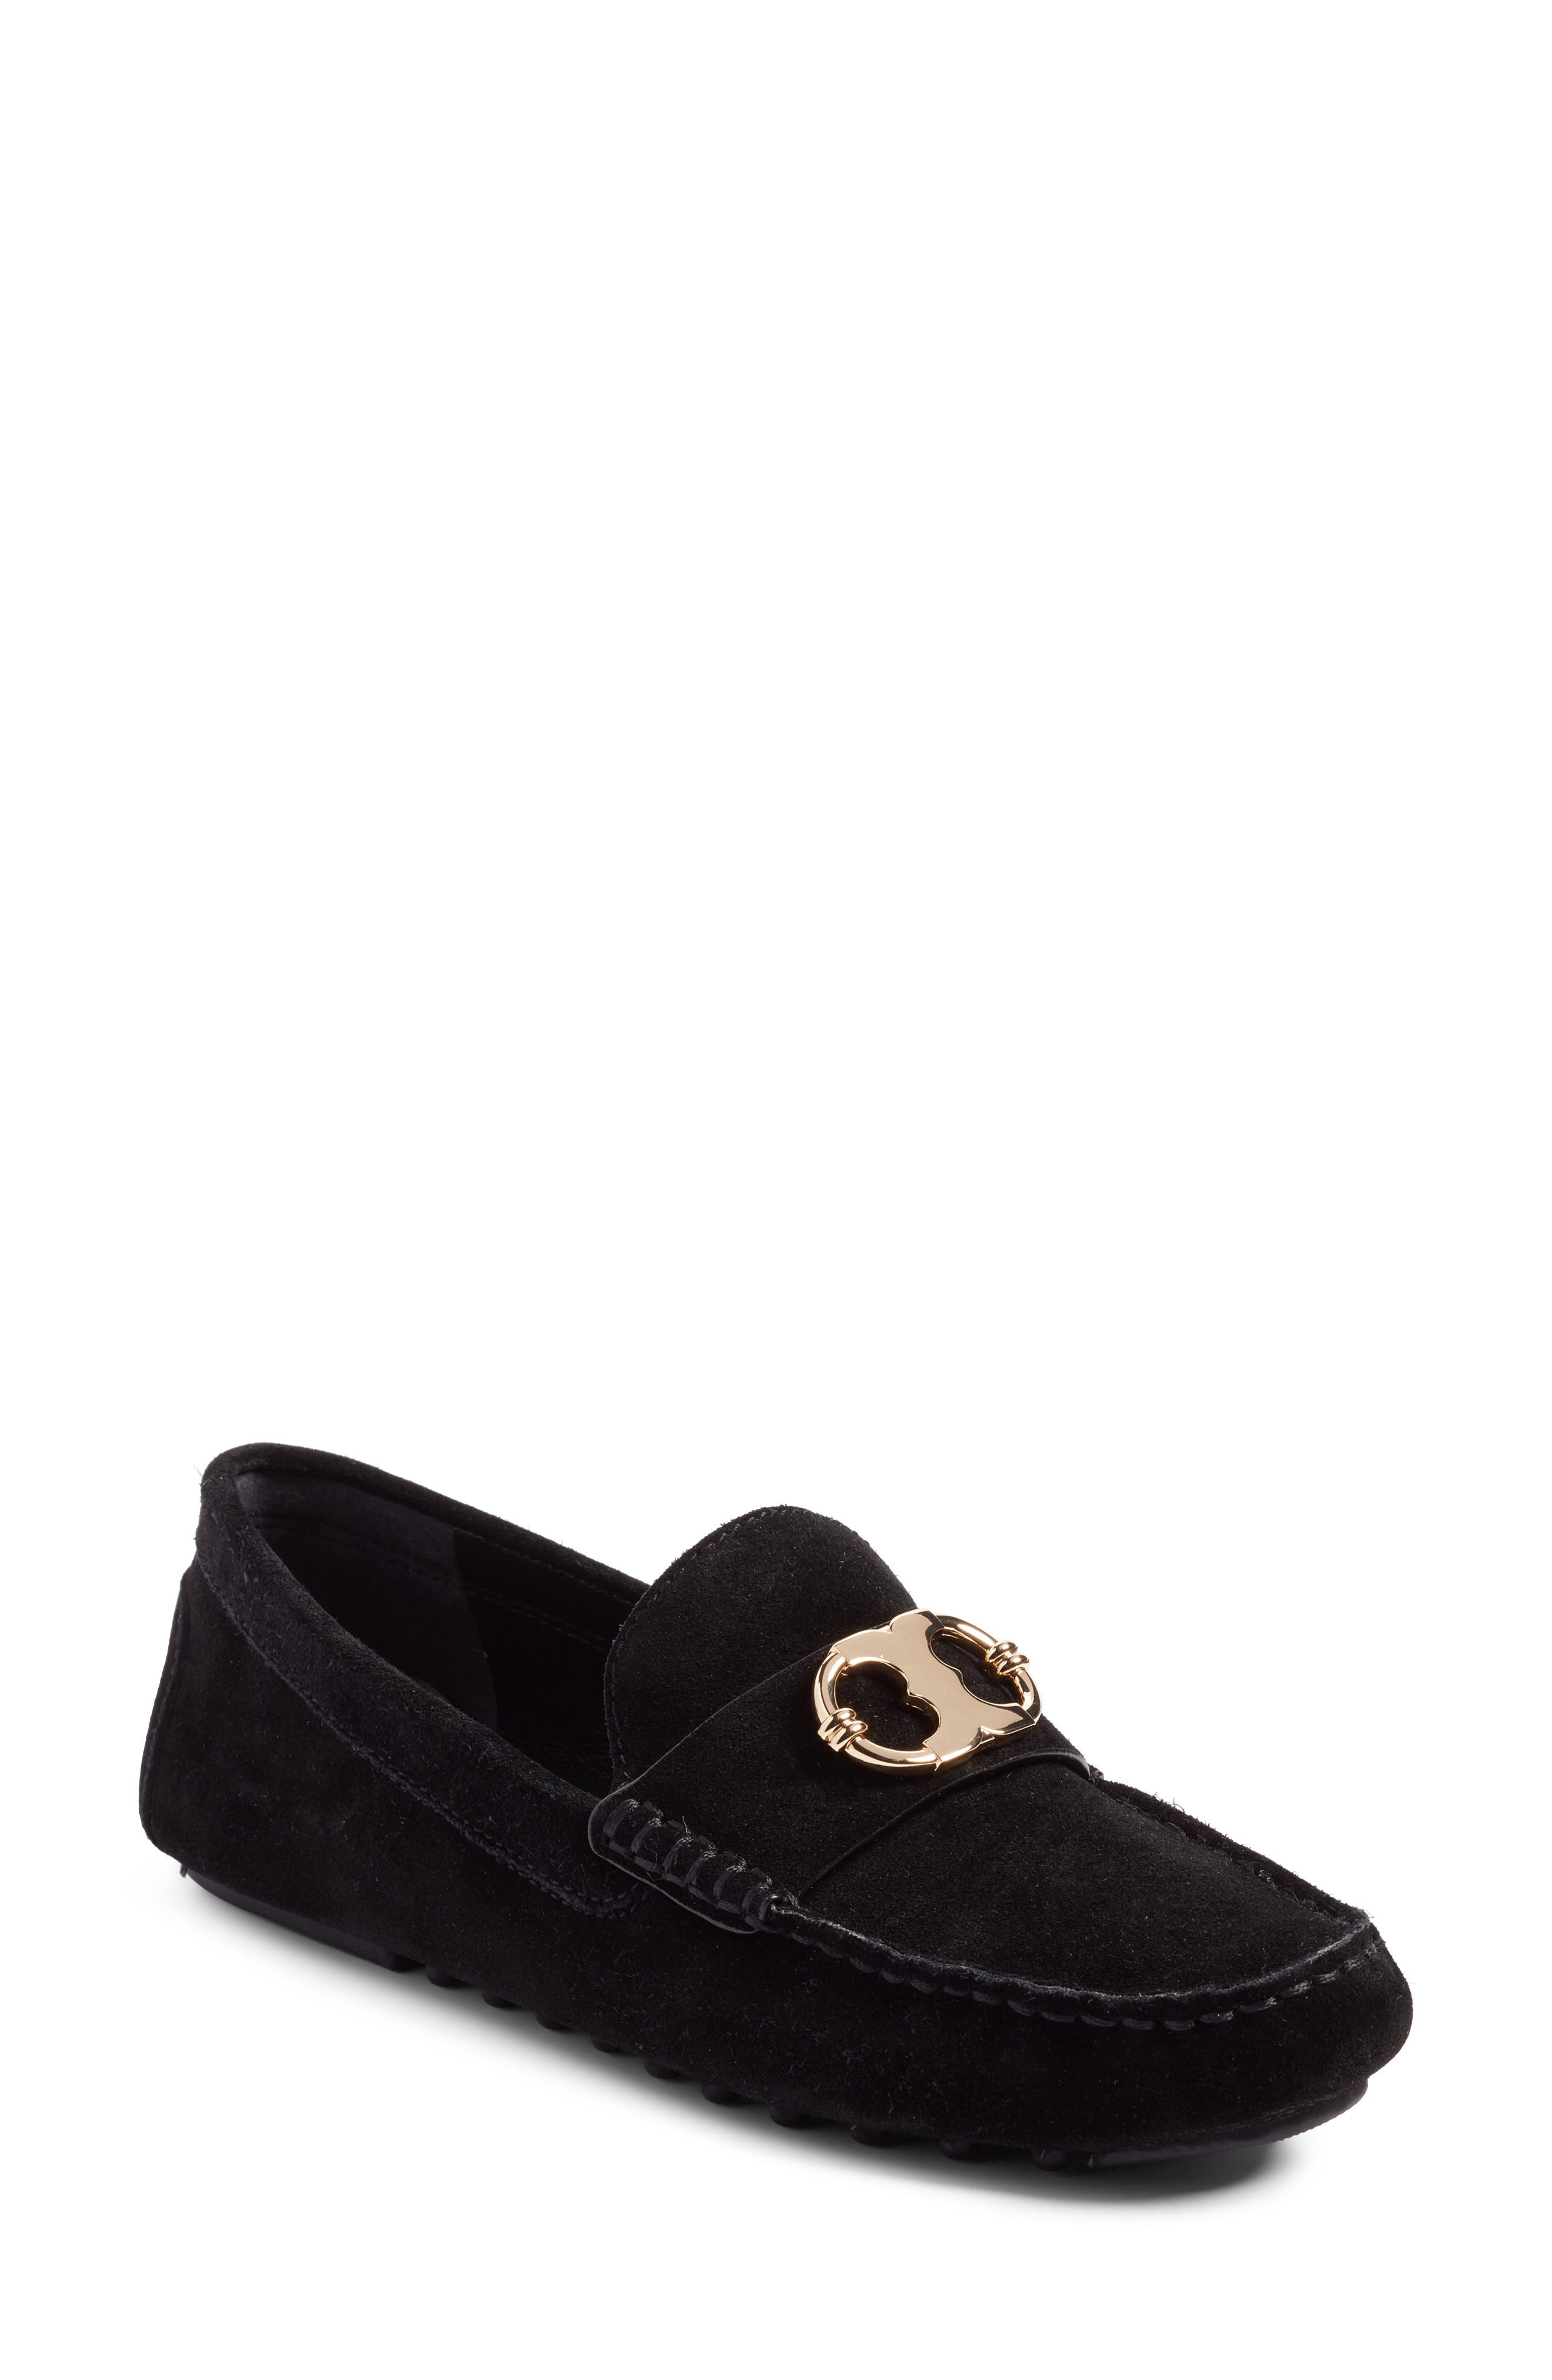 Gemini Driving Loafer,                             Main thumbnail 1, color,